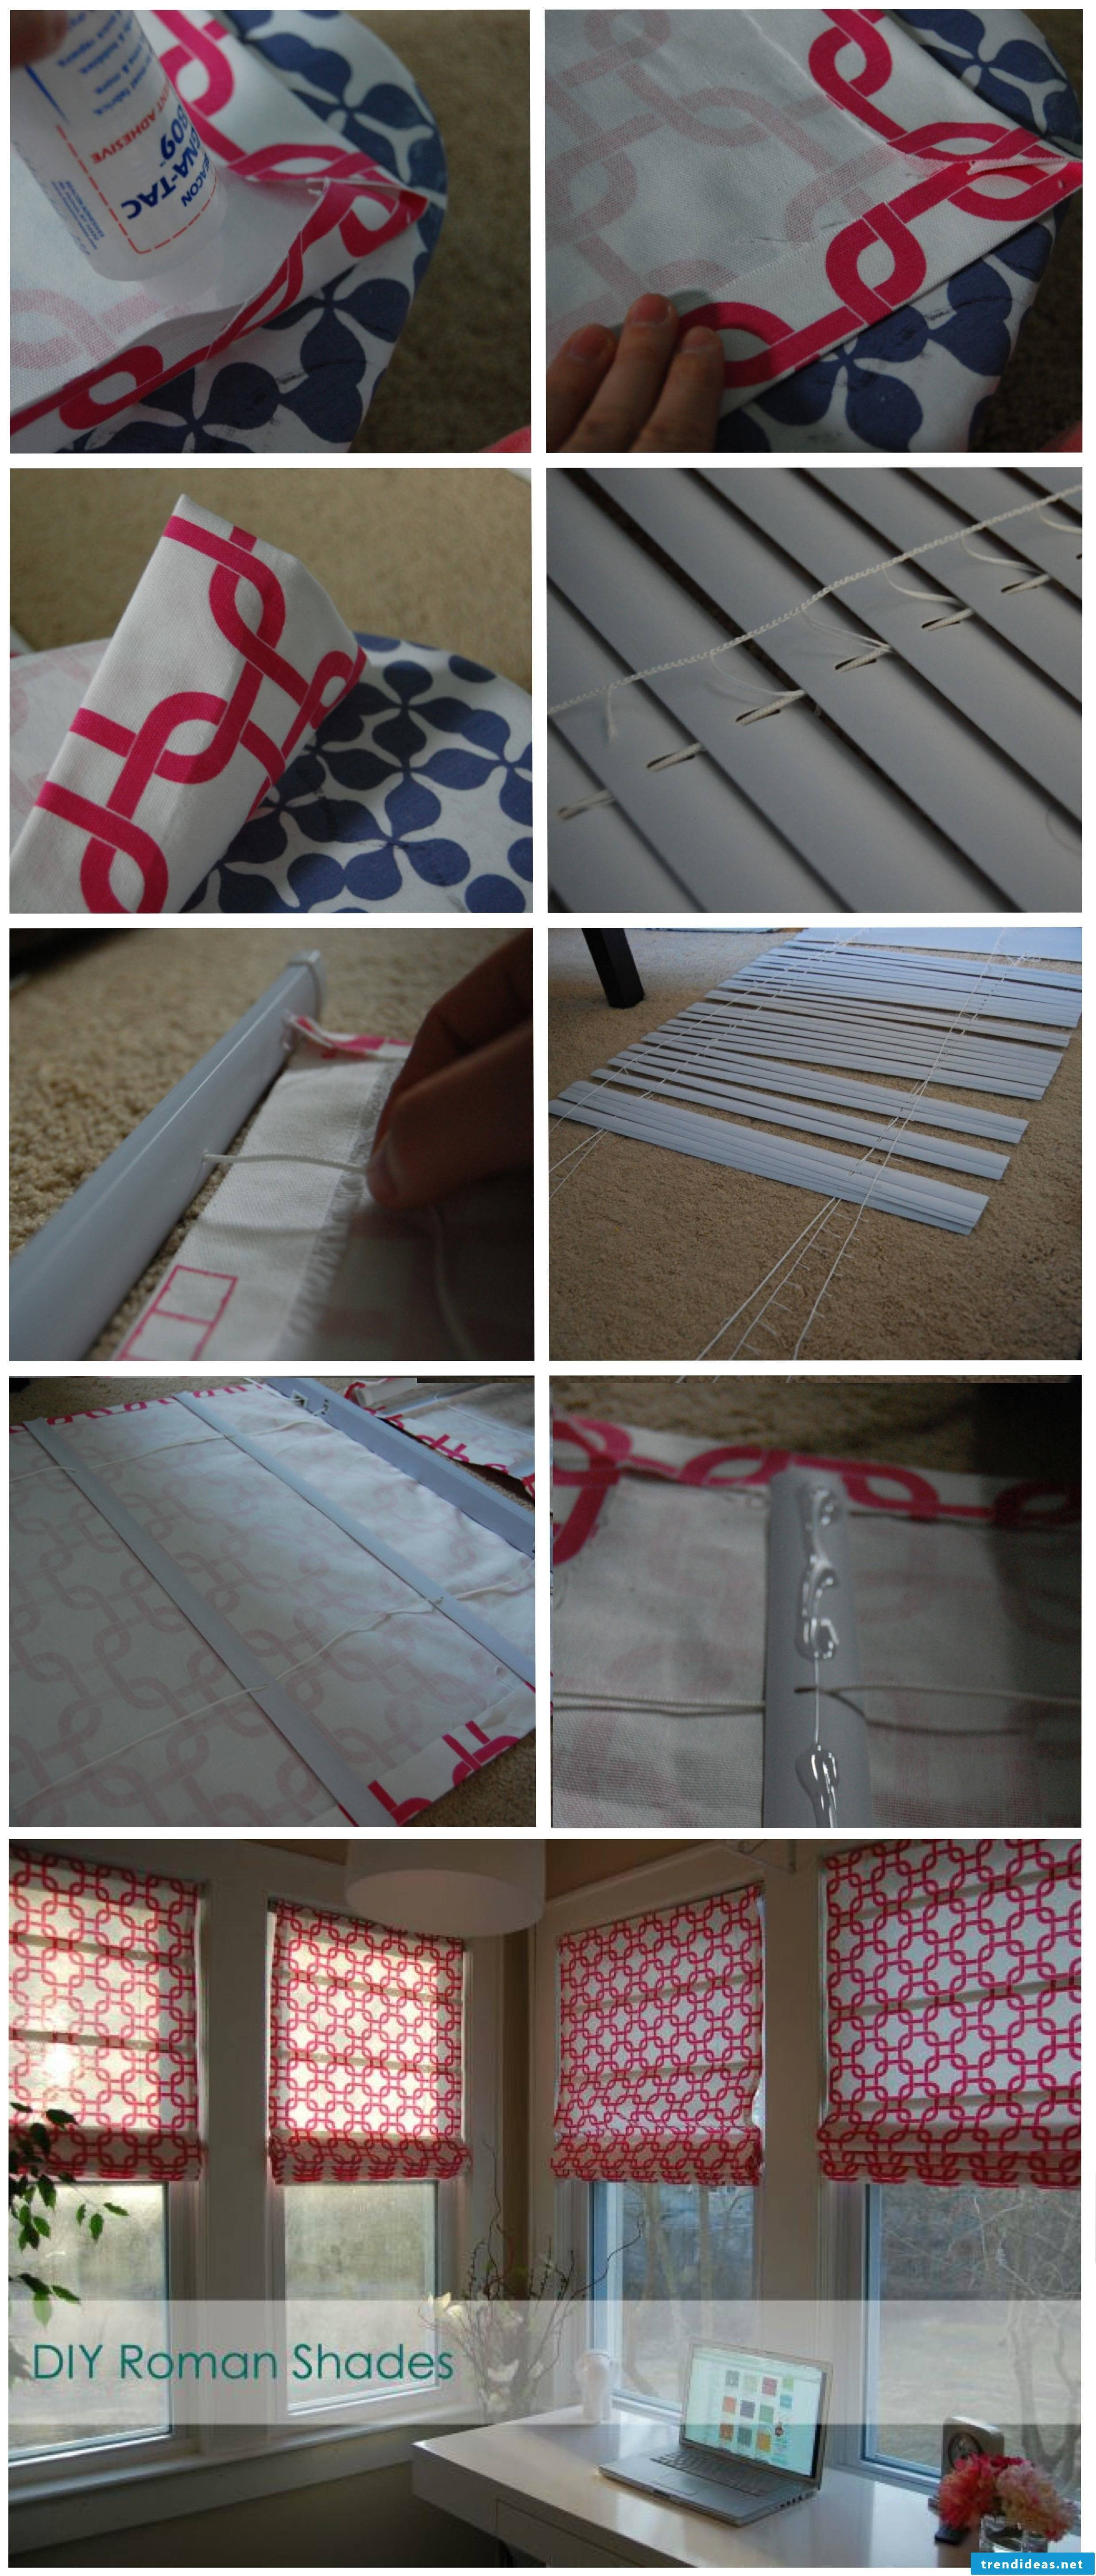 Instructions for roman curtains